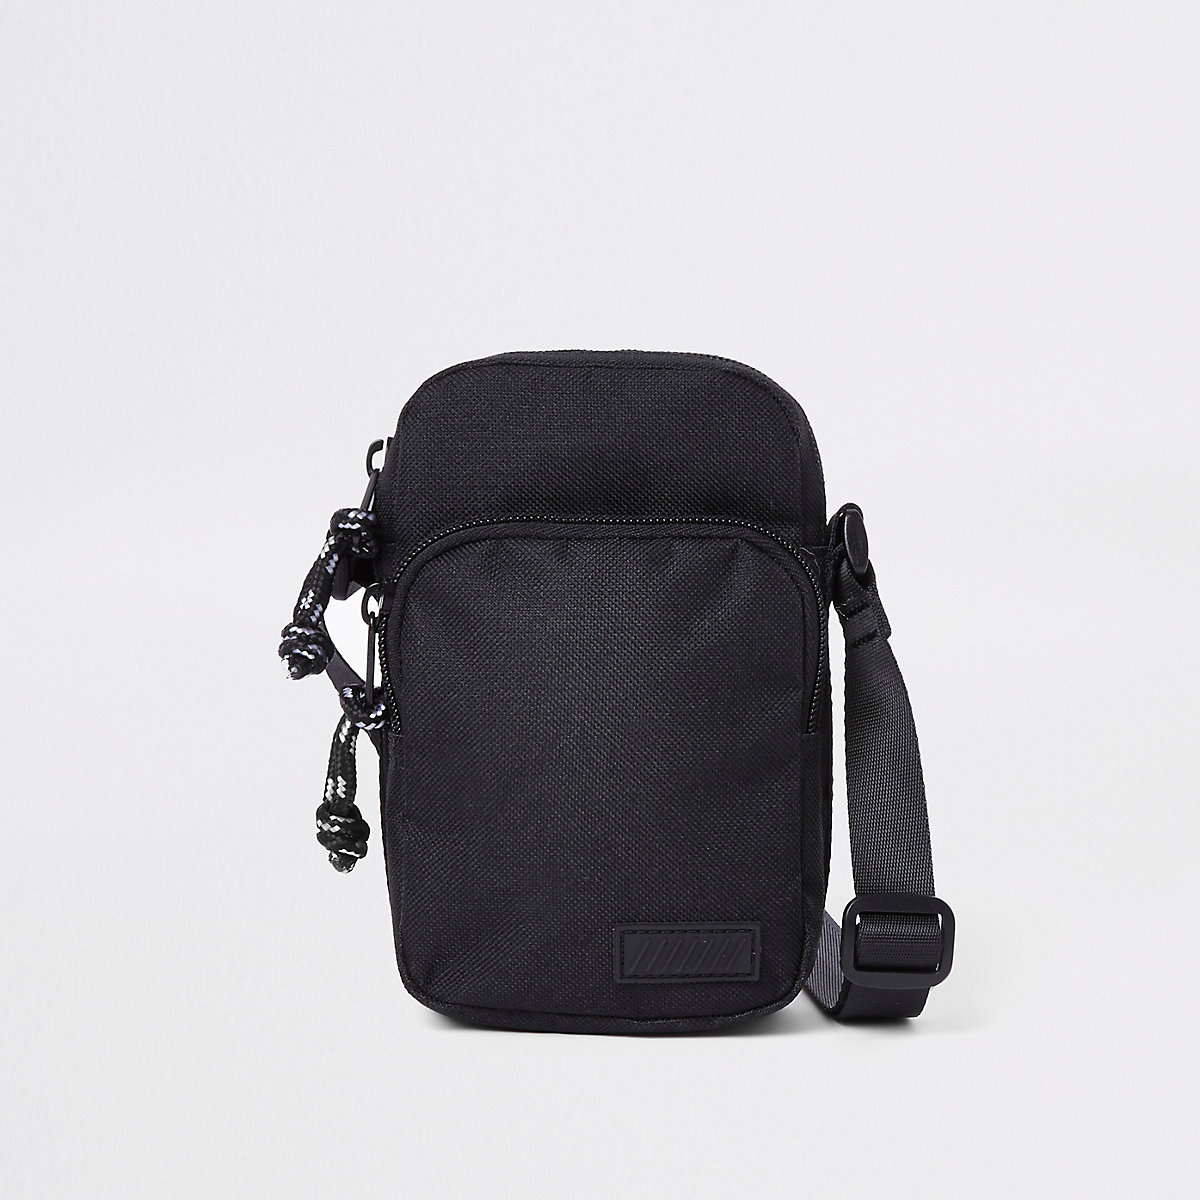 Black mini cross body flight pouch